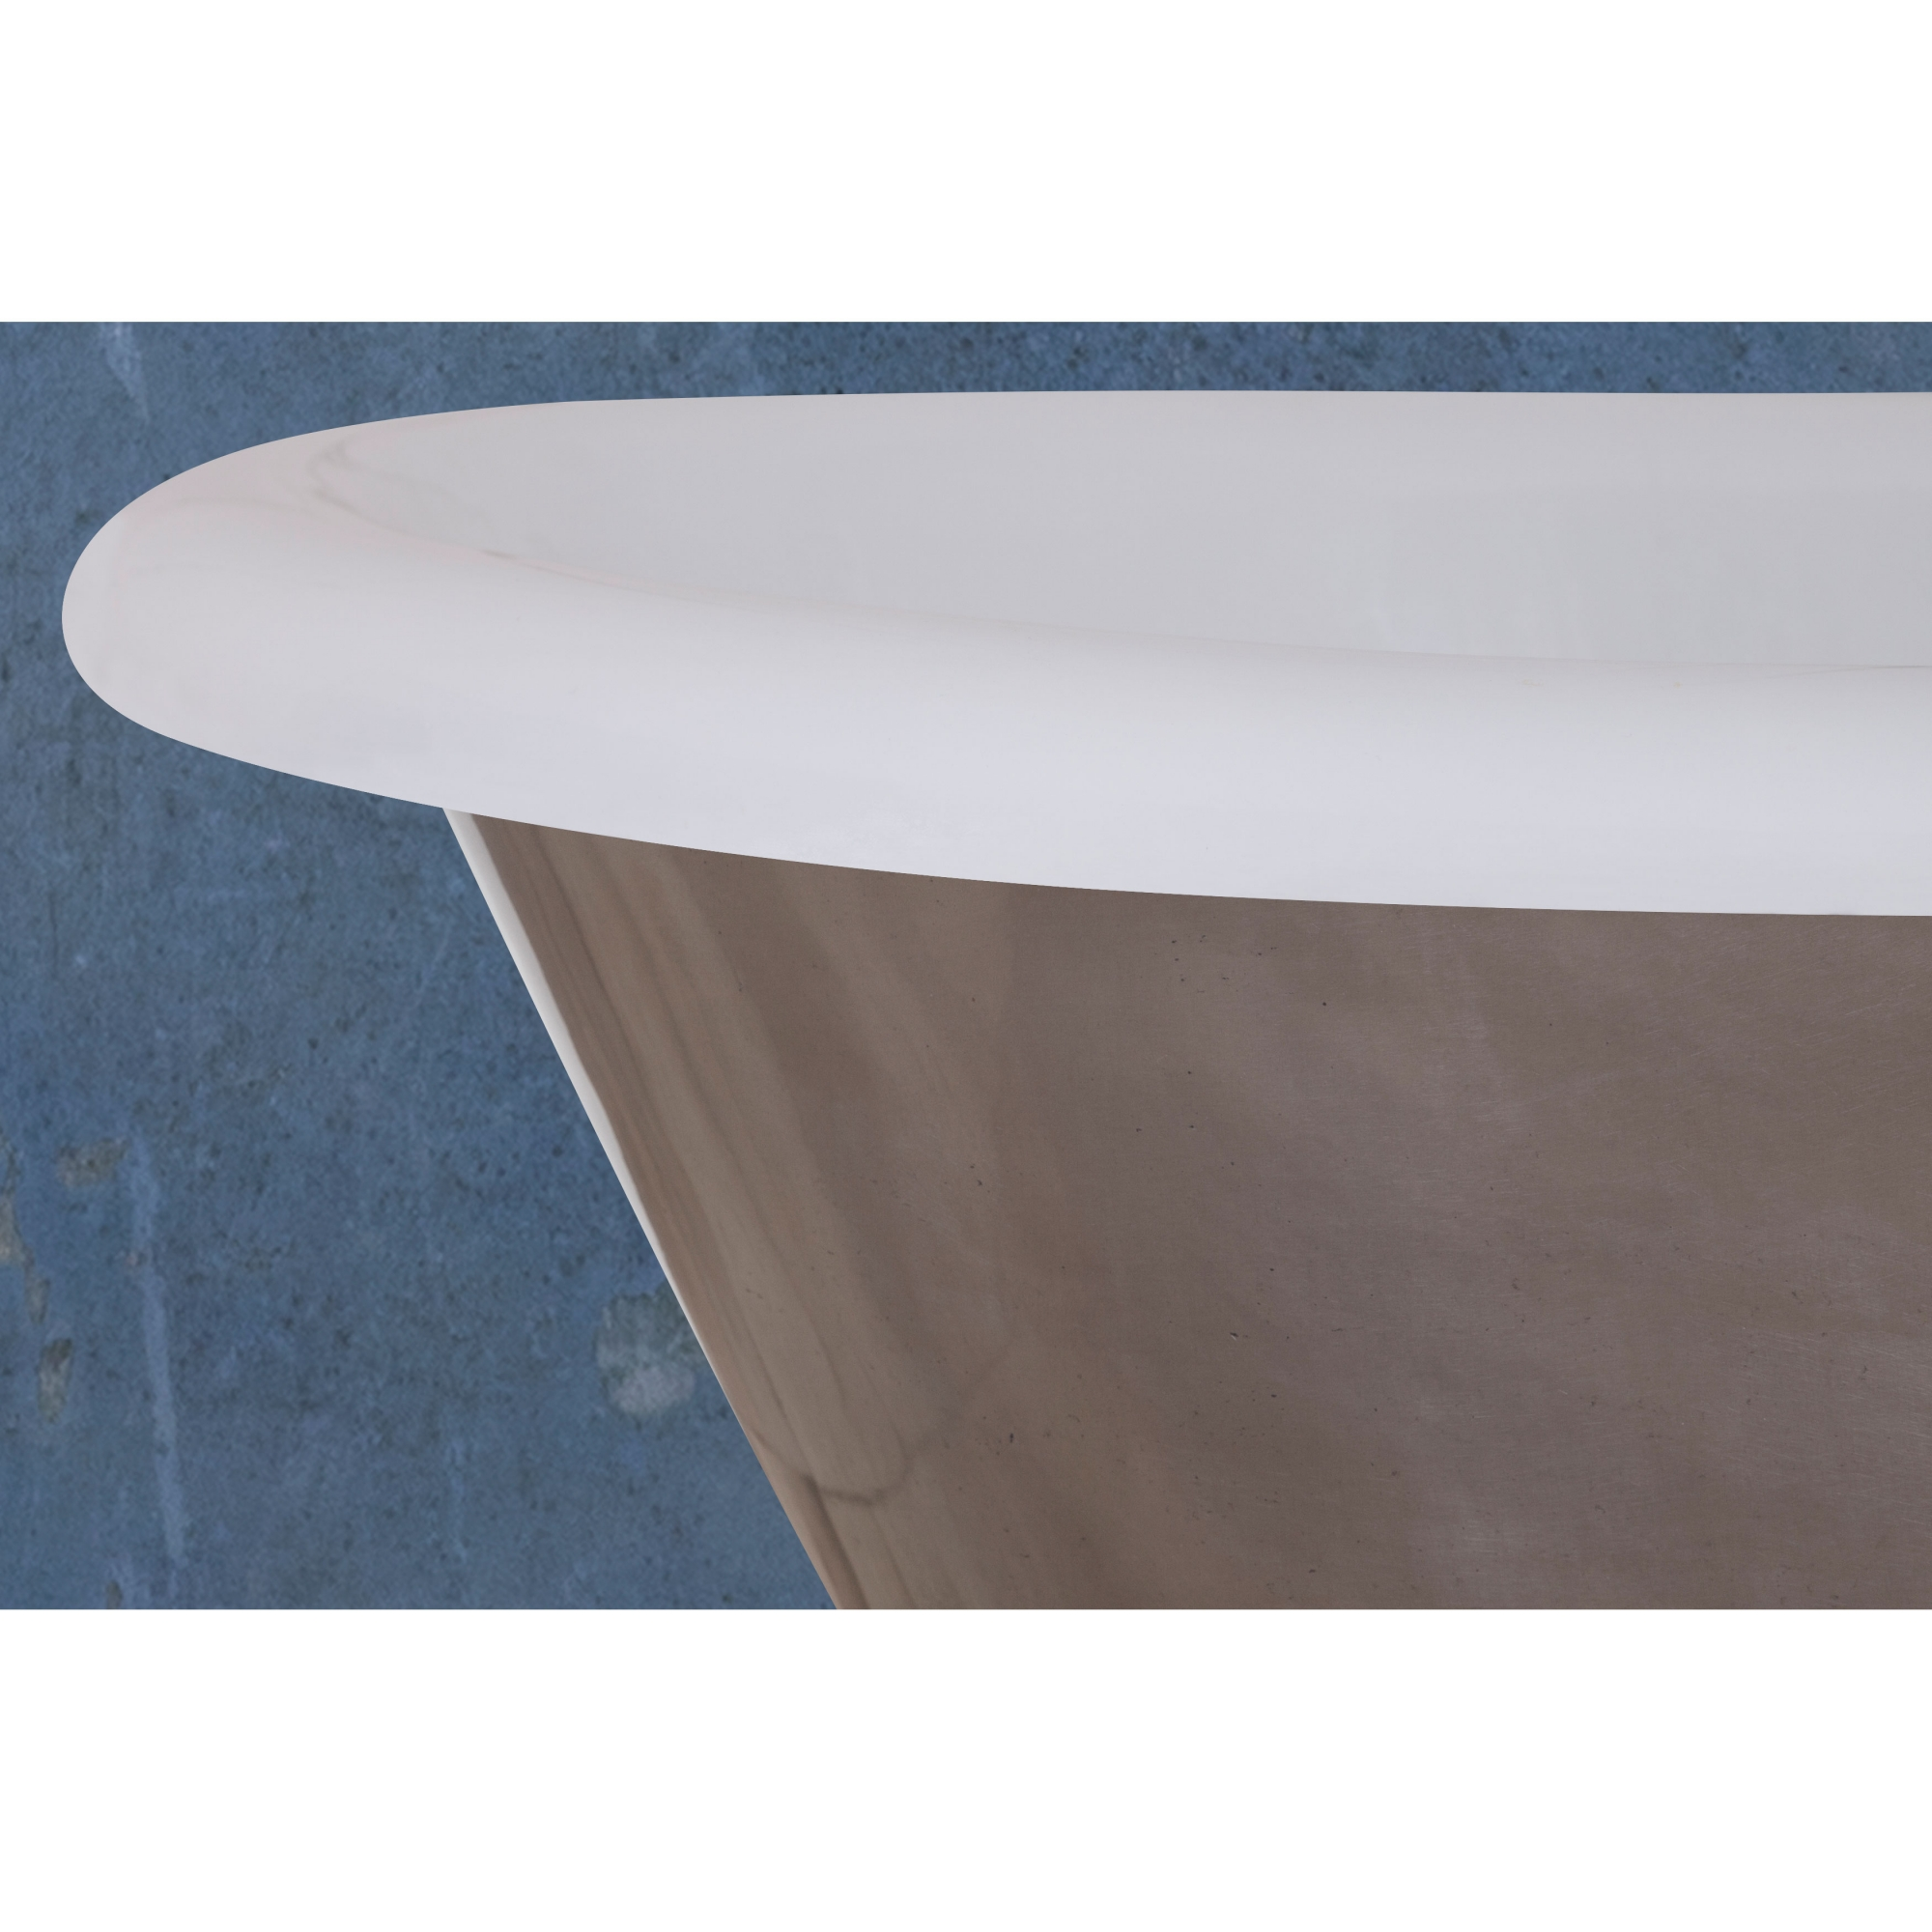 Jig Montreal Cast Iron Roll Top Plinth Bath Polished - 0 Tap Hole-0